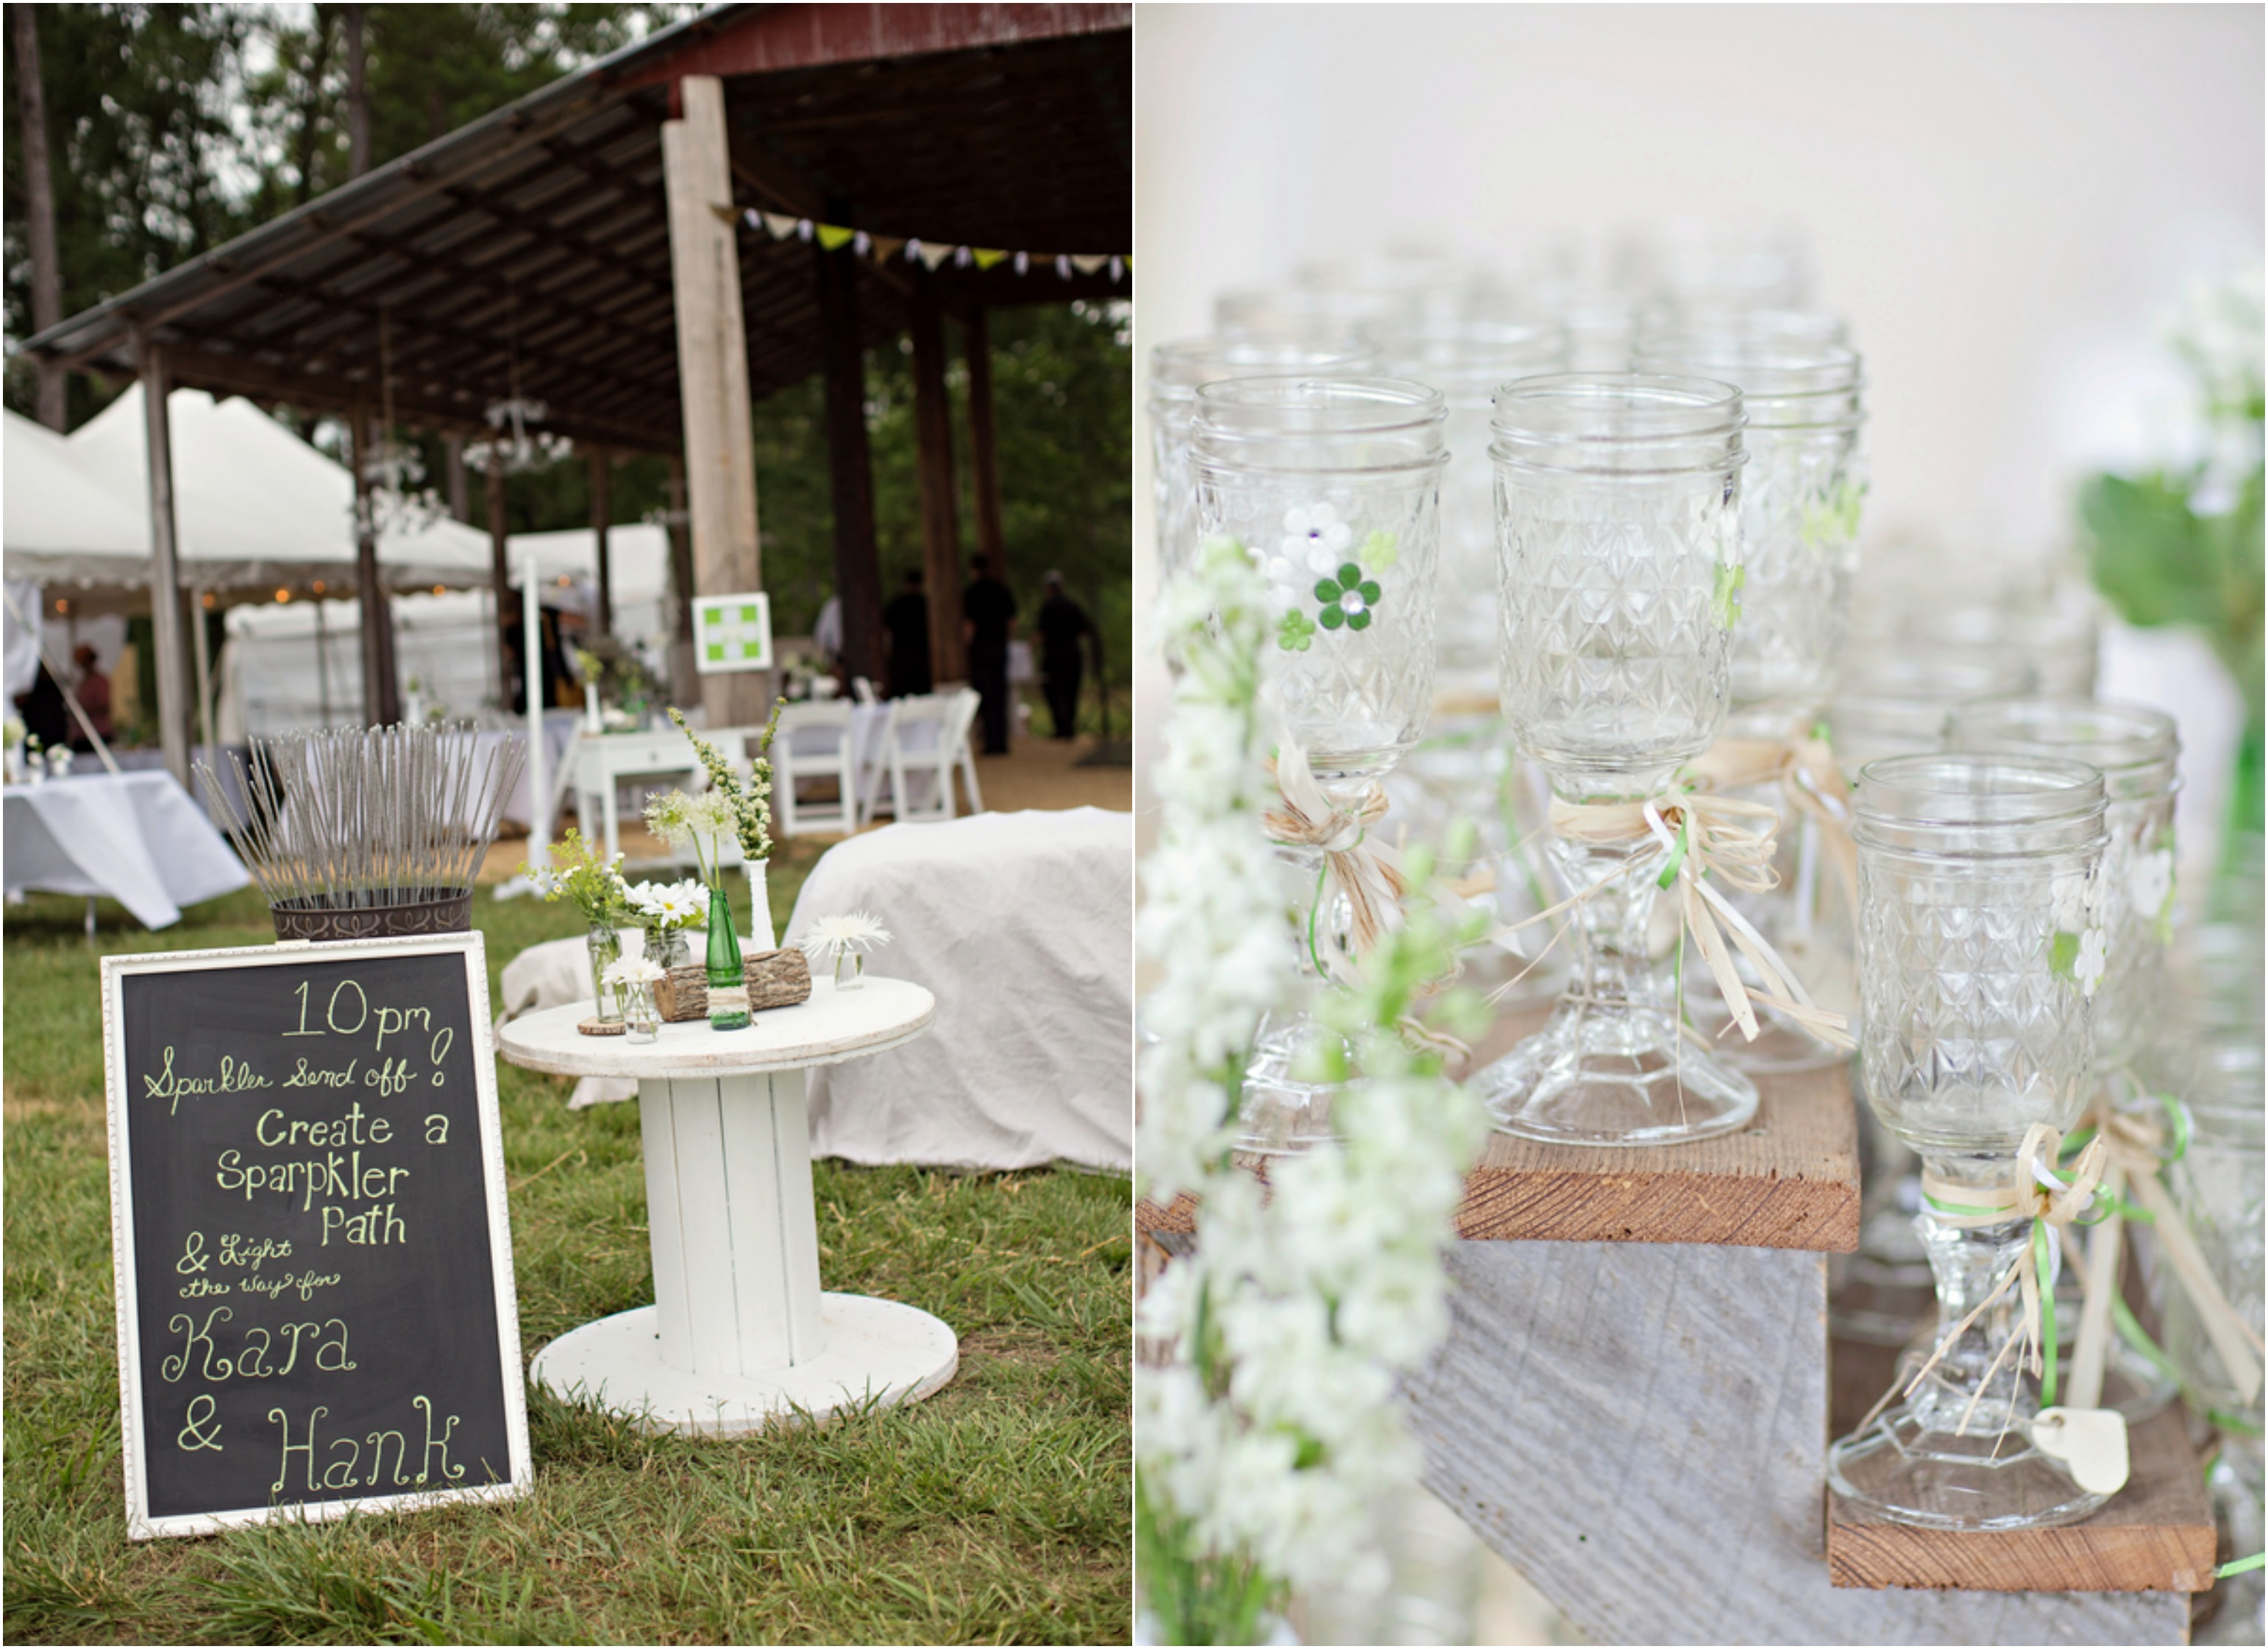 Elegant Country Style Wedding Centerpieces – Wedding